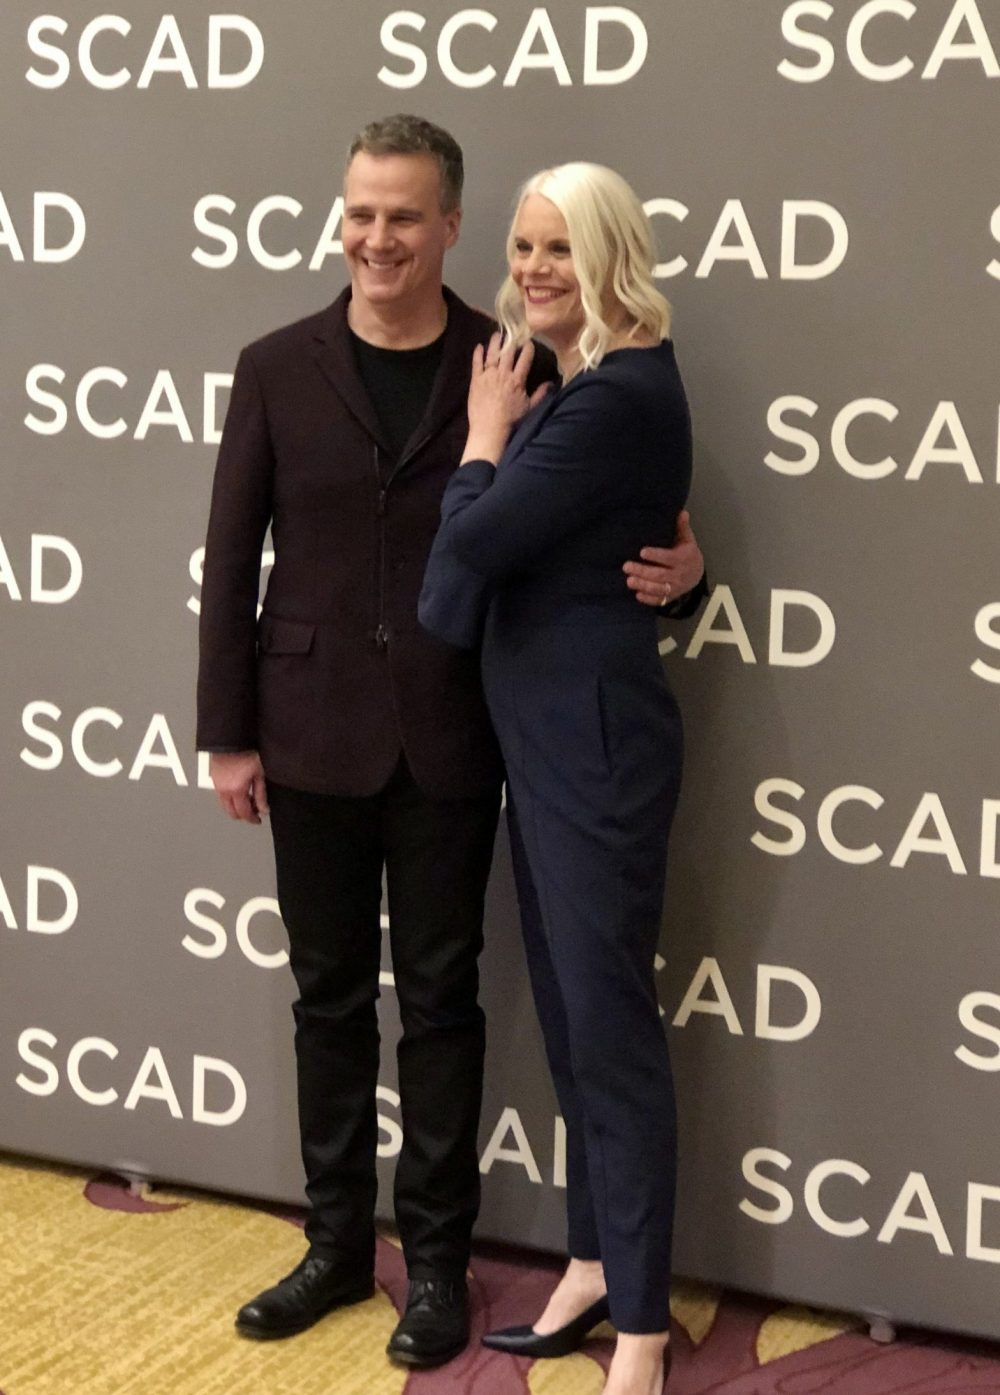 Council of Dads showrunners Tony Phelan and Joan Rater at SCAD aTVfest 2020 photo credit: Tracey Phillipps/So Many Shows